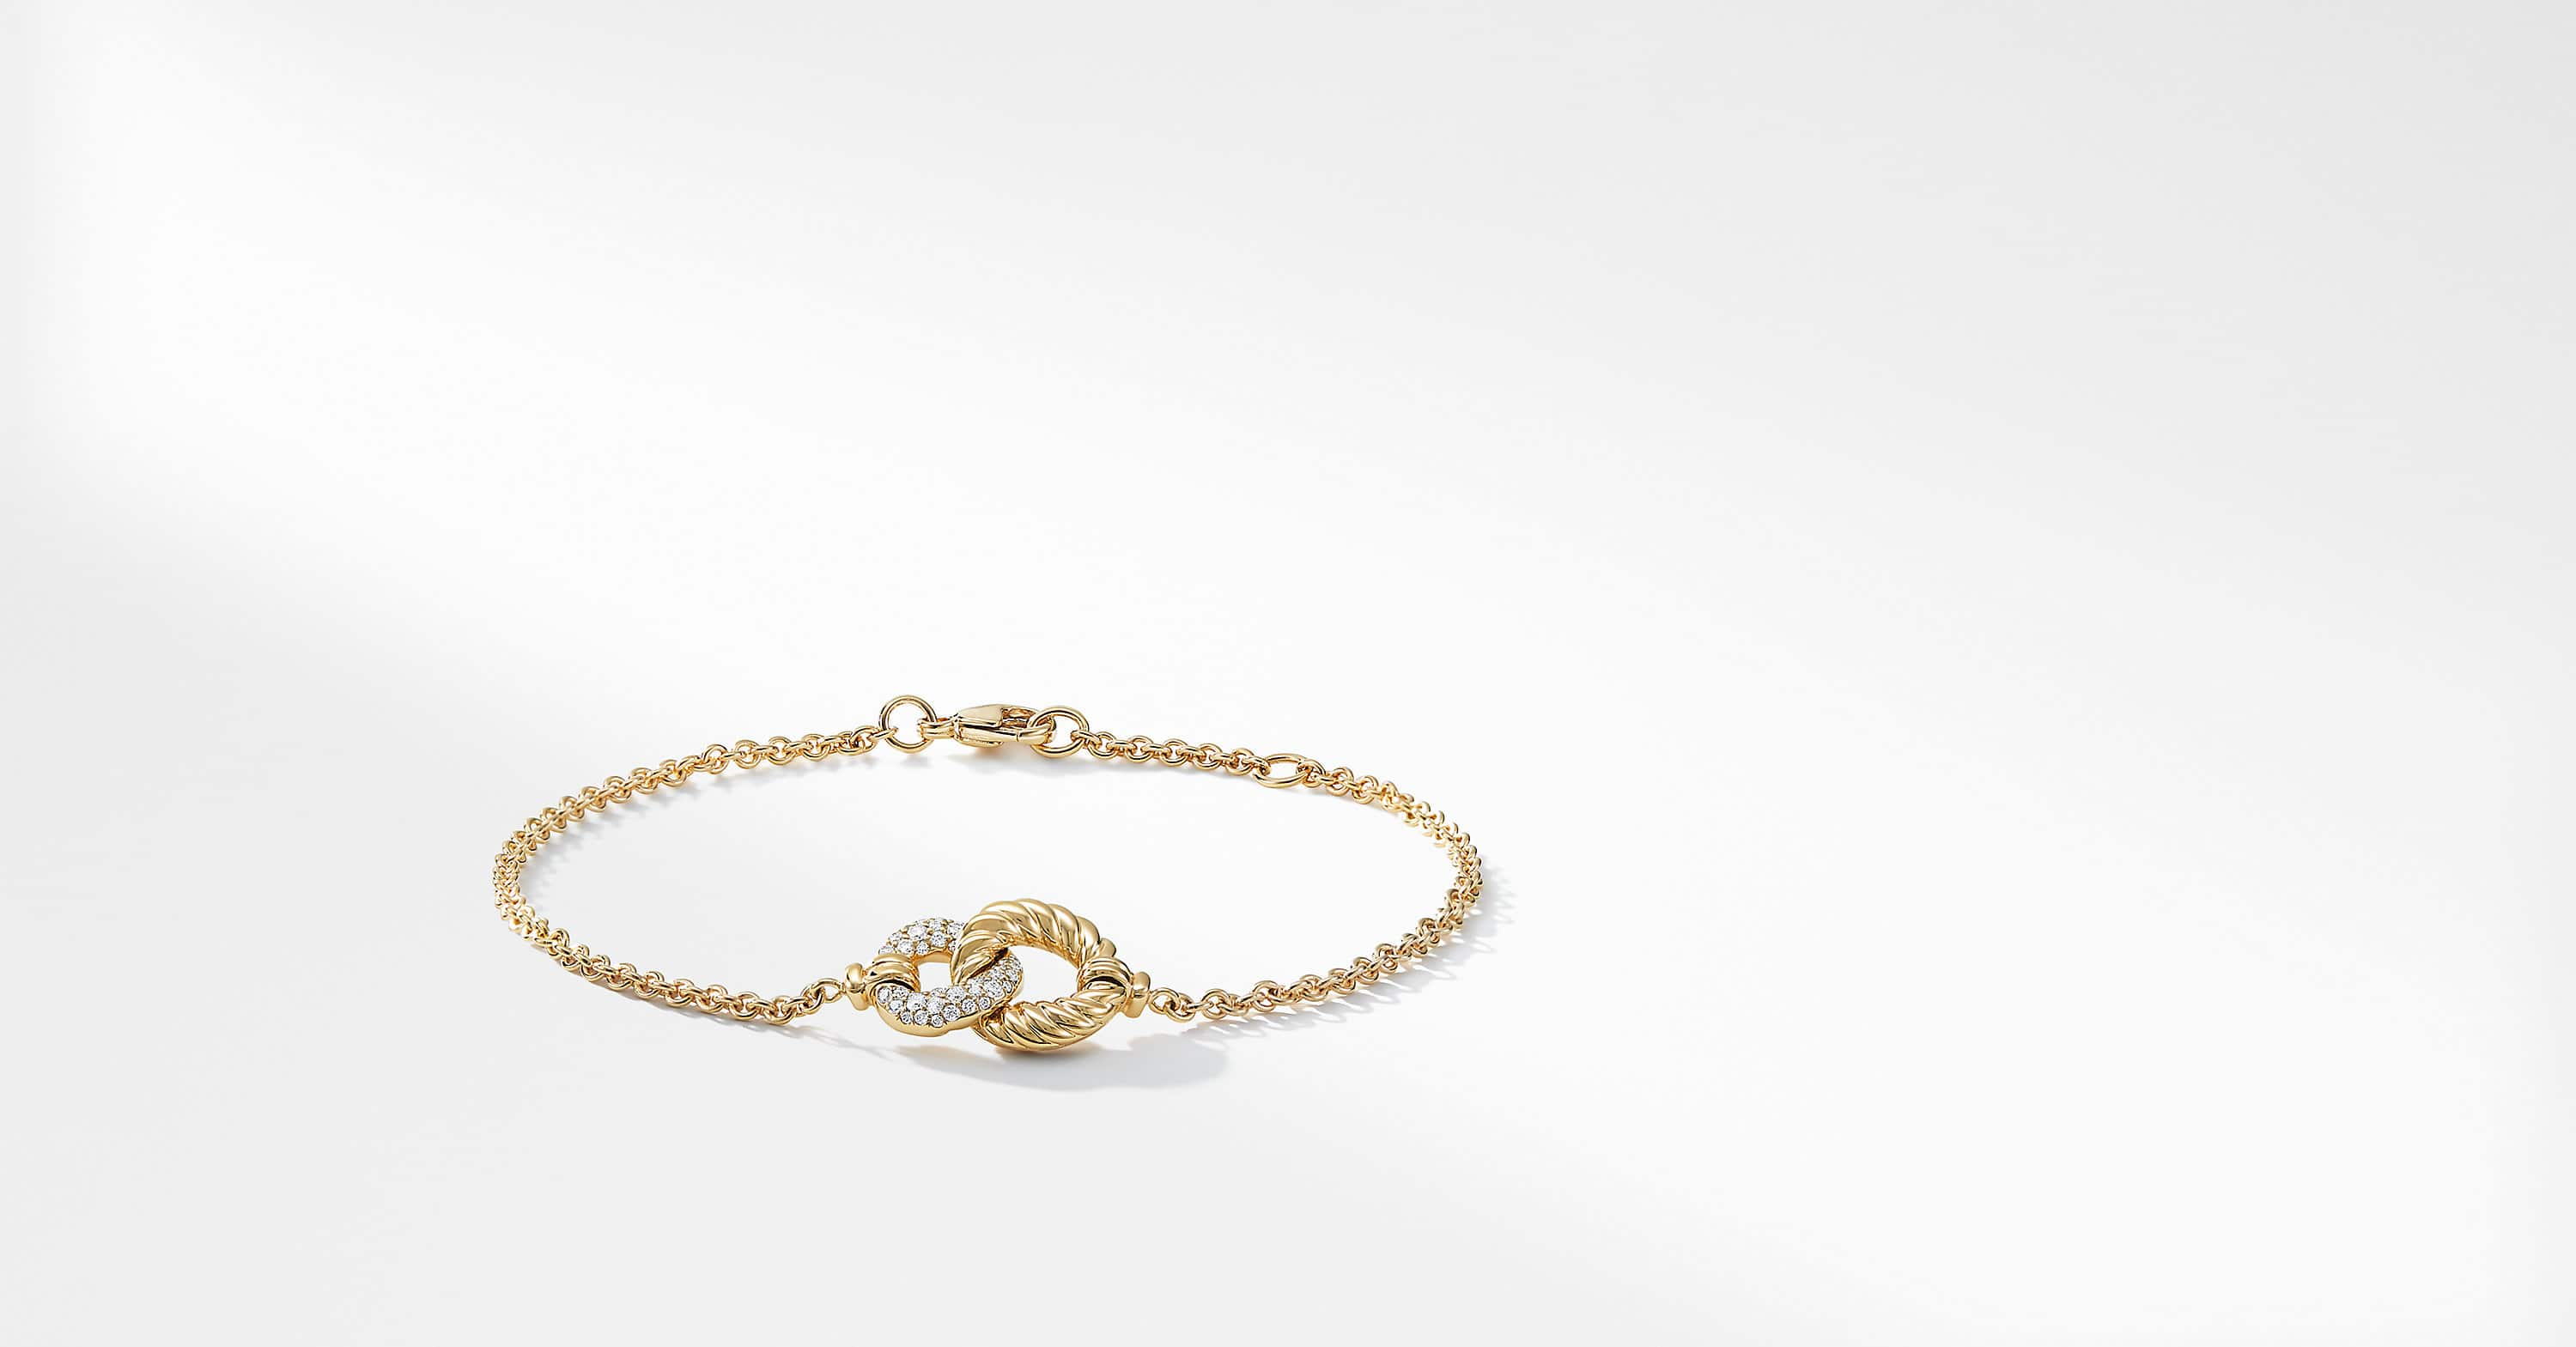 Belmont Curb Link Pendant Bracelet with Diamonds in 18K Gold